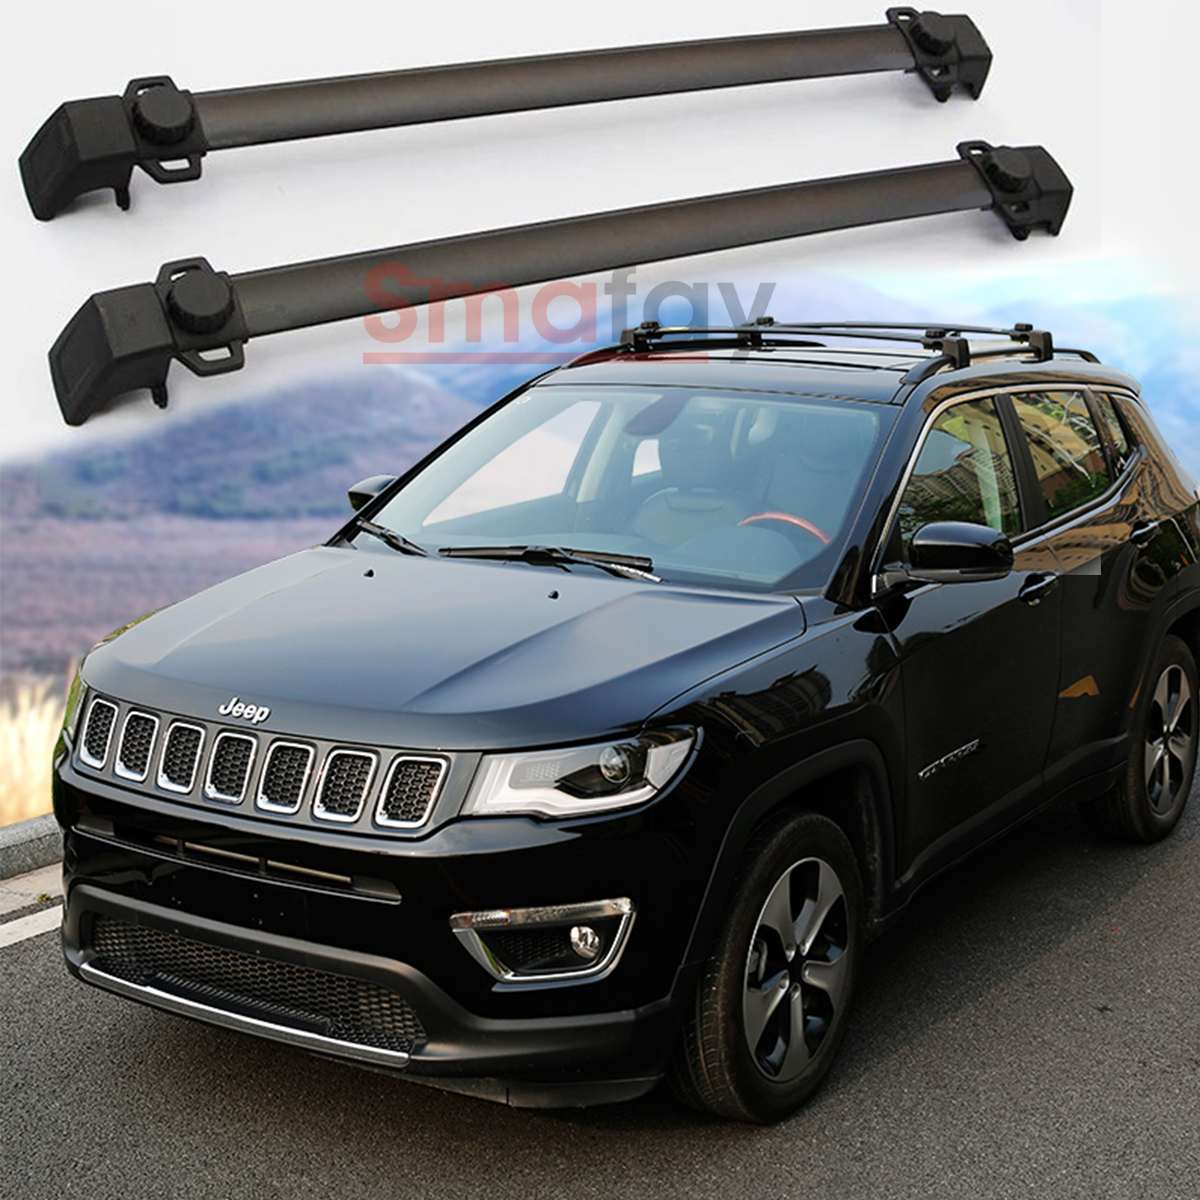 2018 Jeep Compass Bike Rack